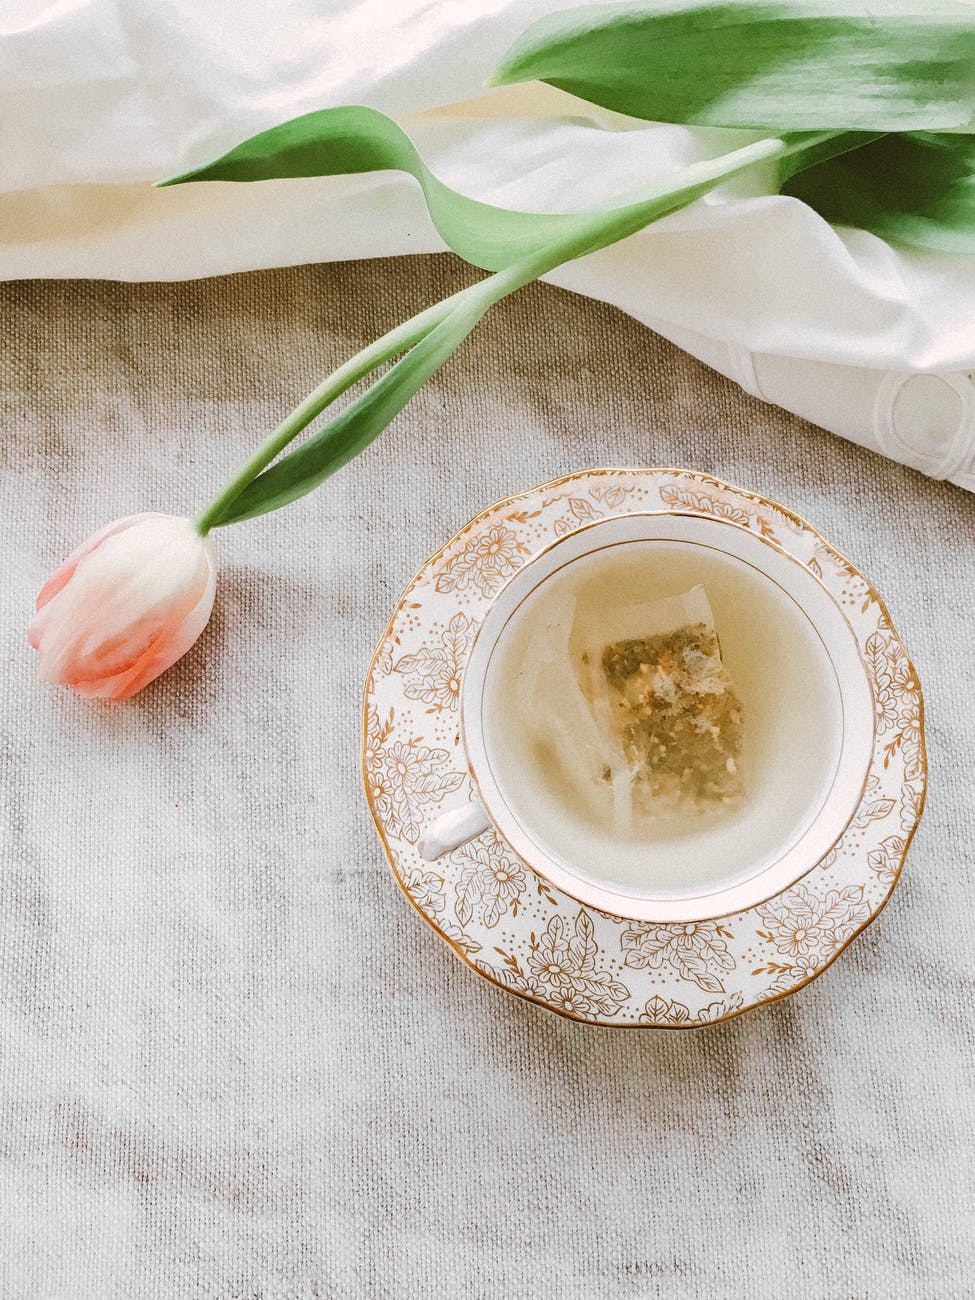 pink petaled flowers near teacup and saucer